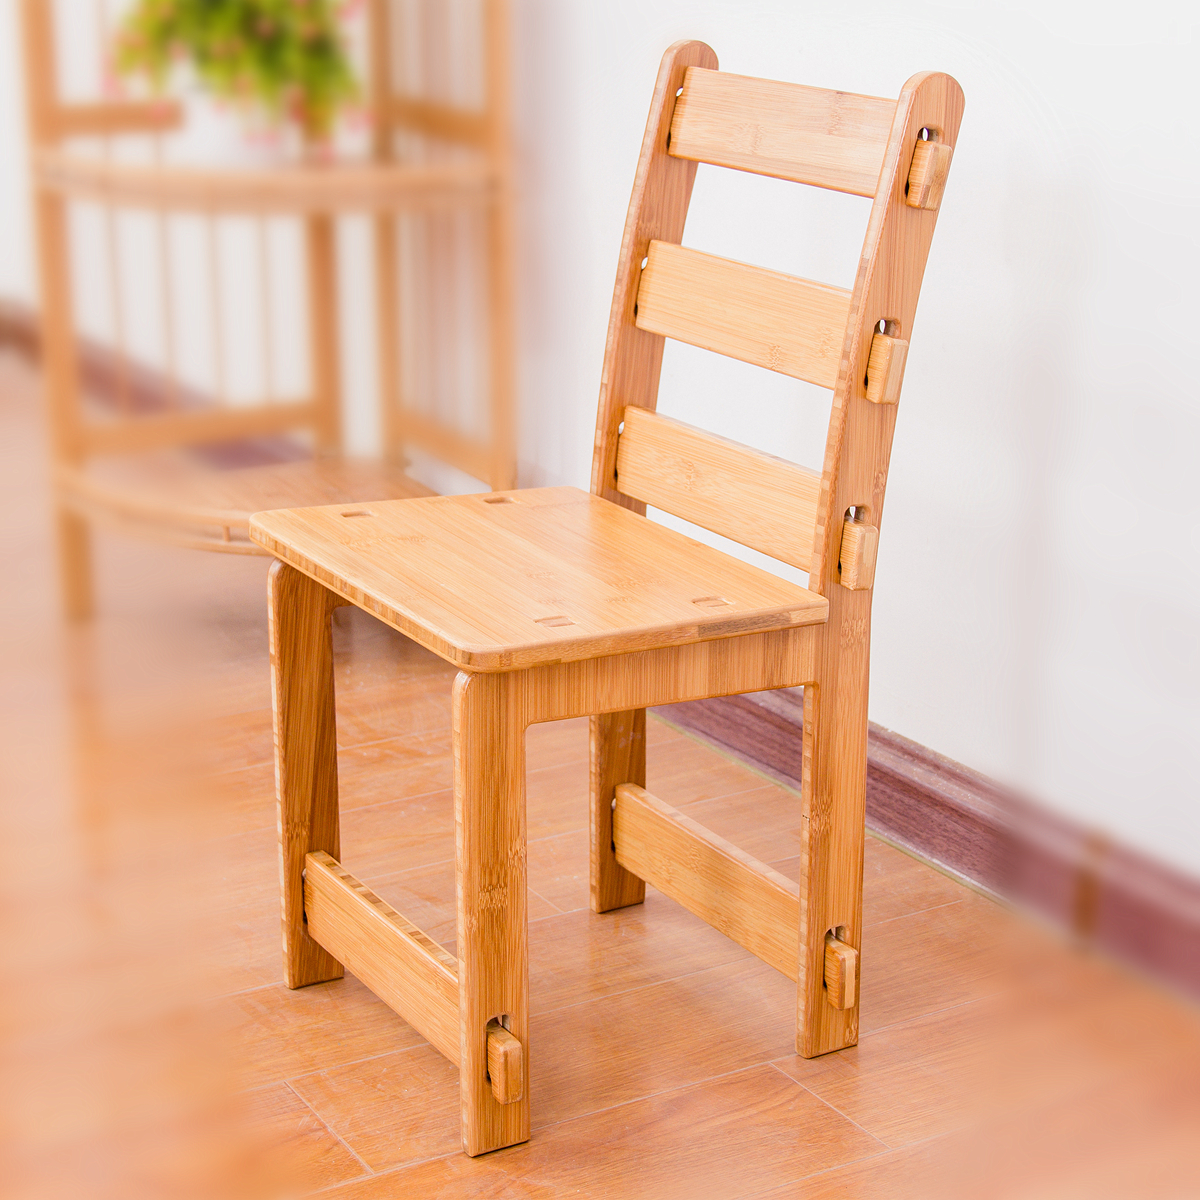 Eco friendly screwless bamboo wooden children kids chair for study table dining bedroom schoolroom safety environmental wood in children chairs from